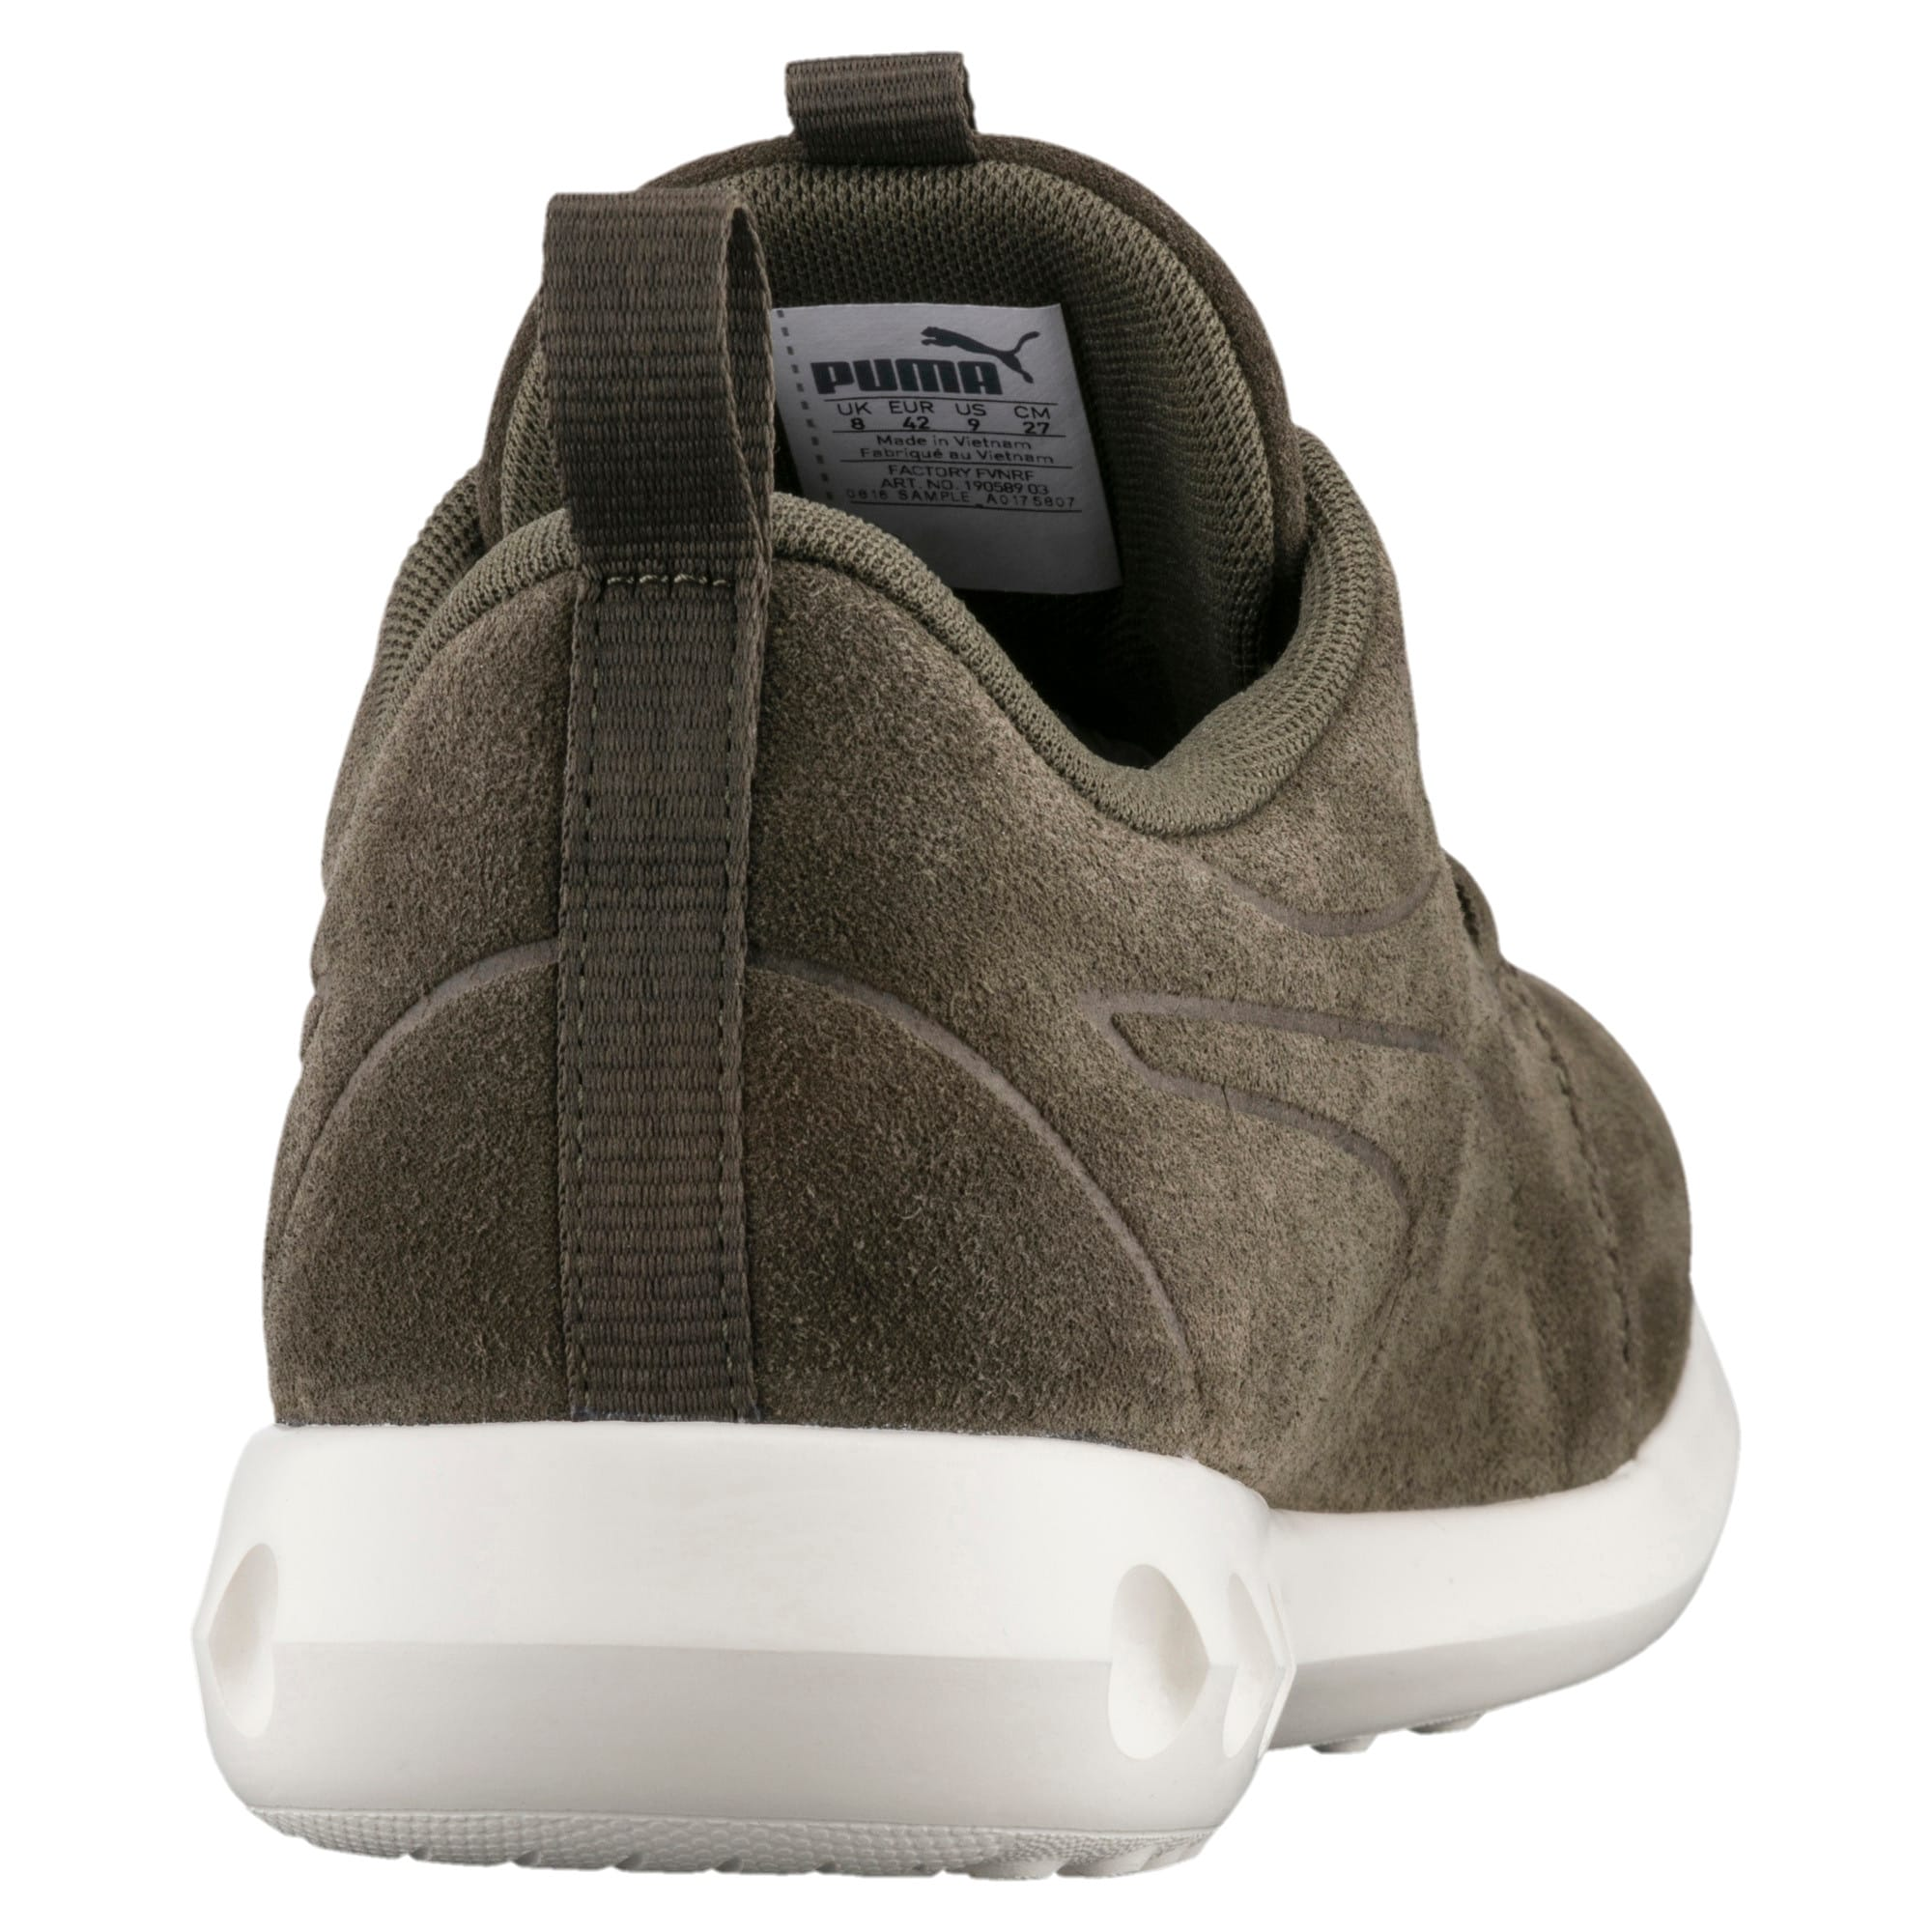 Thumbnail 3 of Carson 2 Moulded Suede Trainers, Olive Night-Whisper White, medium-IND